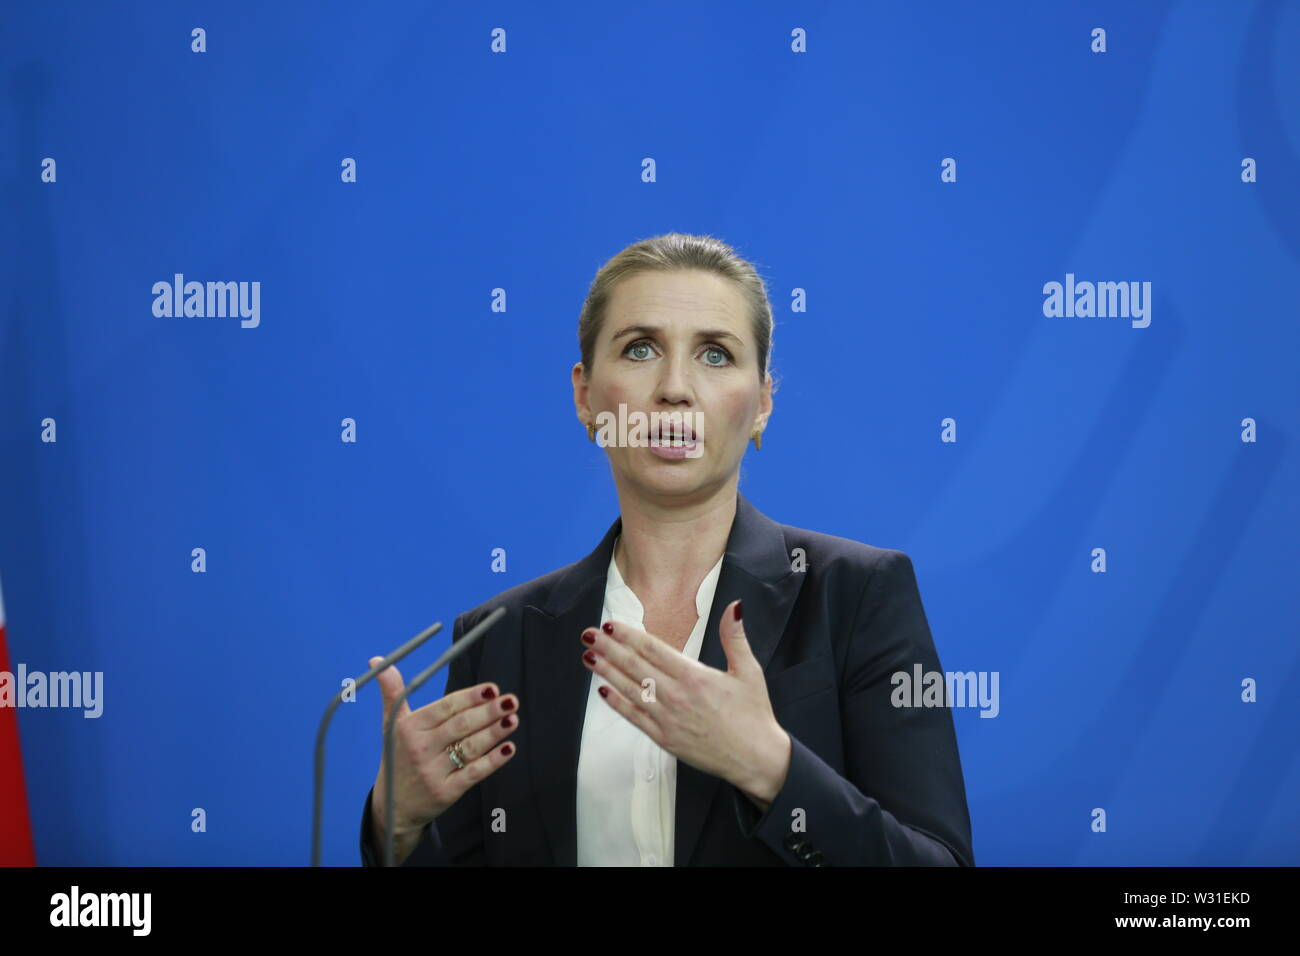 07.05.2019, Berlin, Germany,  the new Danish Prime Minister Mette Frederiksen at the press conference in the Chancellery in Berlin. Stock Photo